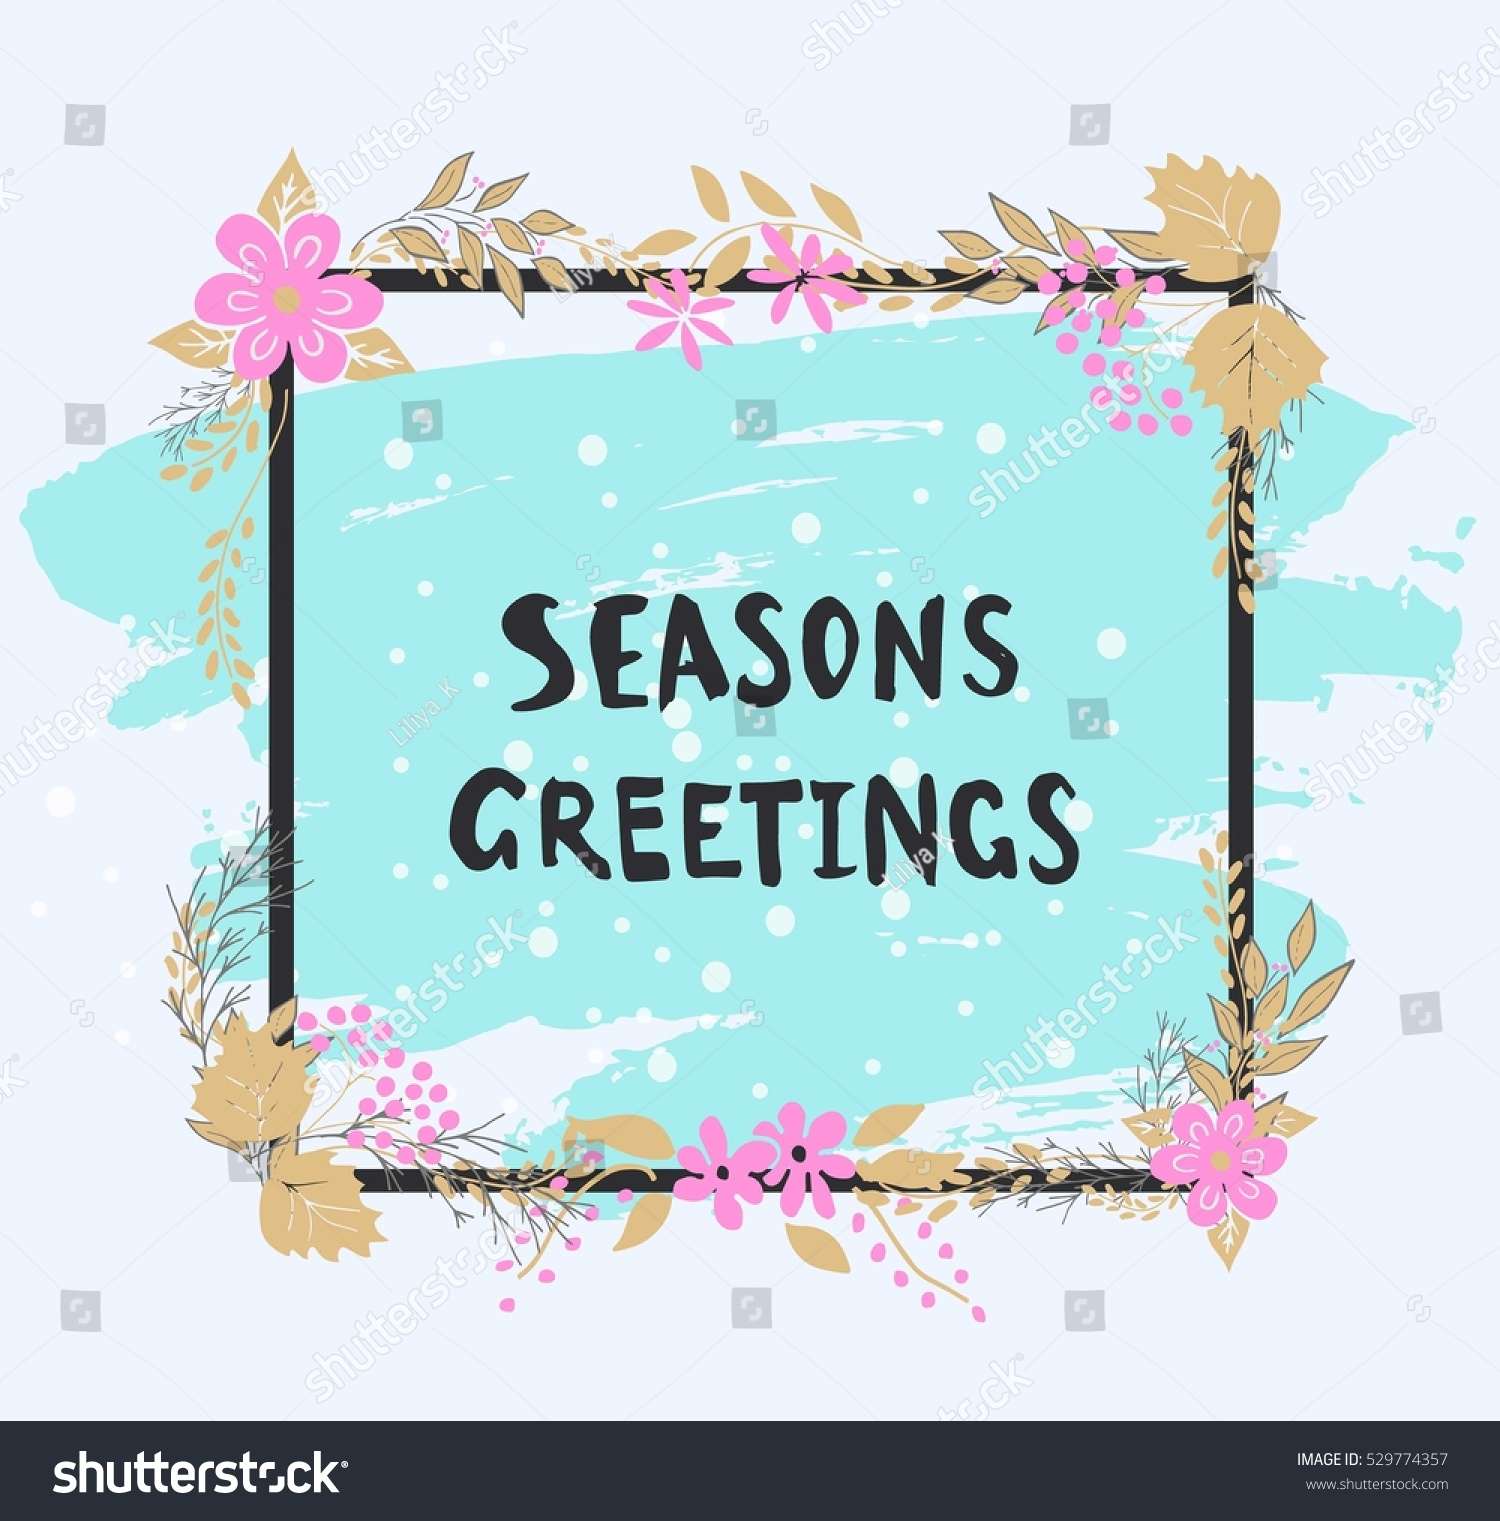 Seasons greetings graphics image collections greeting card examples handwritten seasons greetings text frame flowers stock vector handwritten seasons greetings text frame of flowers kristyandbryce kristyandbryce Images